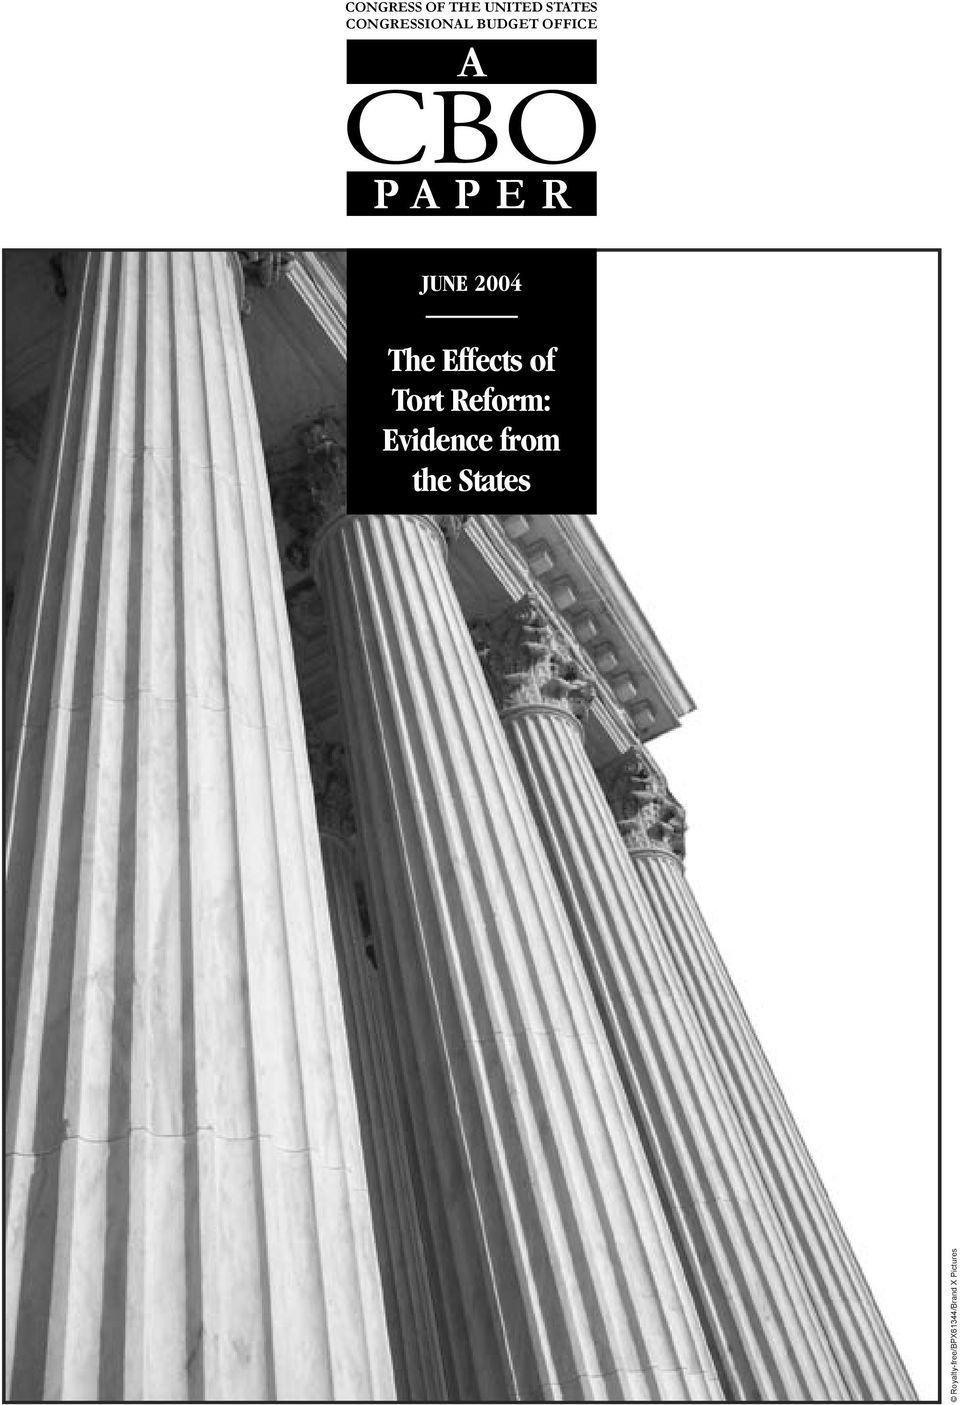 JUNE 2004 The Effects of Tort Reform: